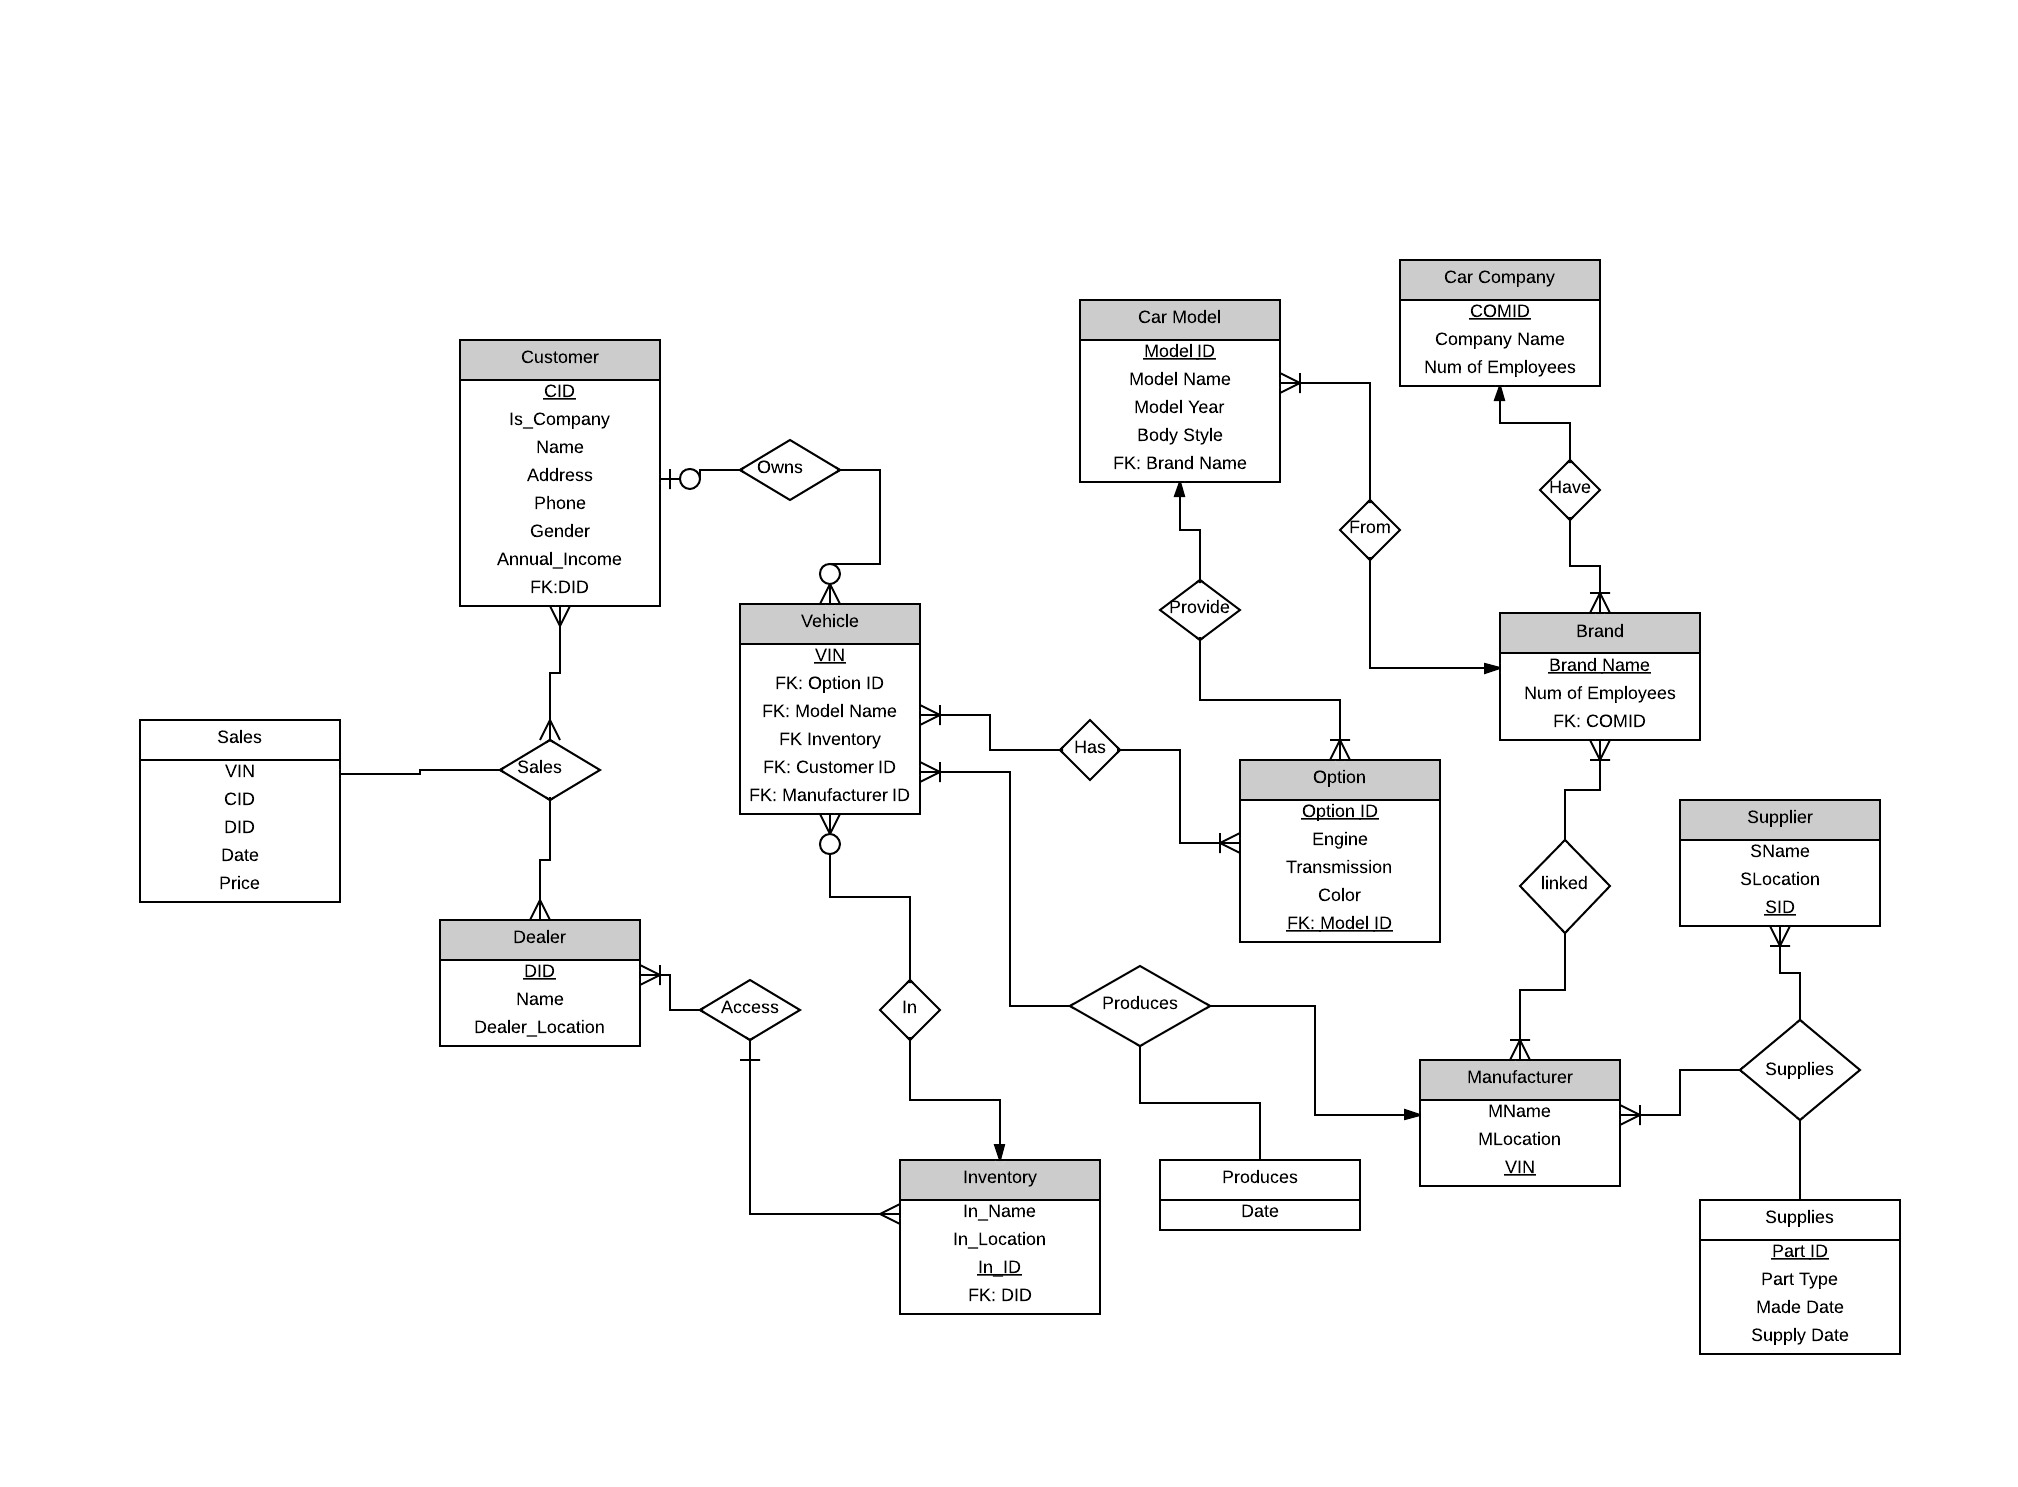 Need Help On An Er Diagram For An Automobile Company - Stack regarding Business Entity Diagram